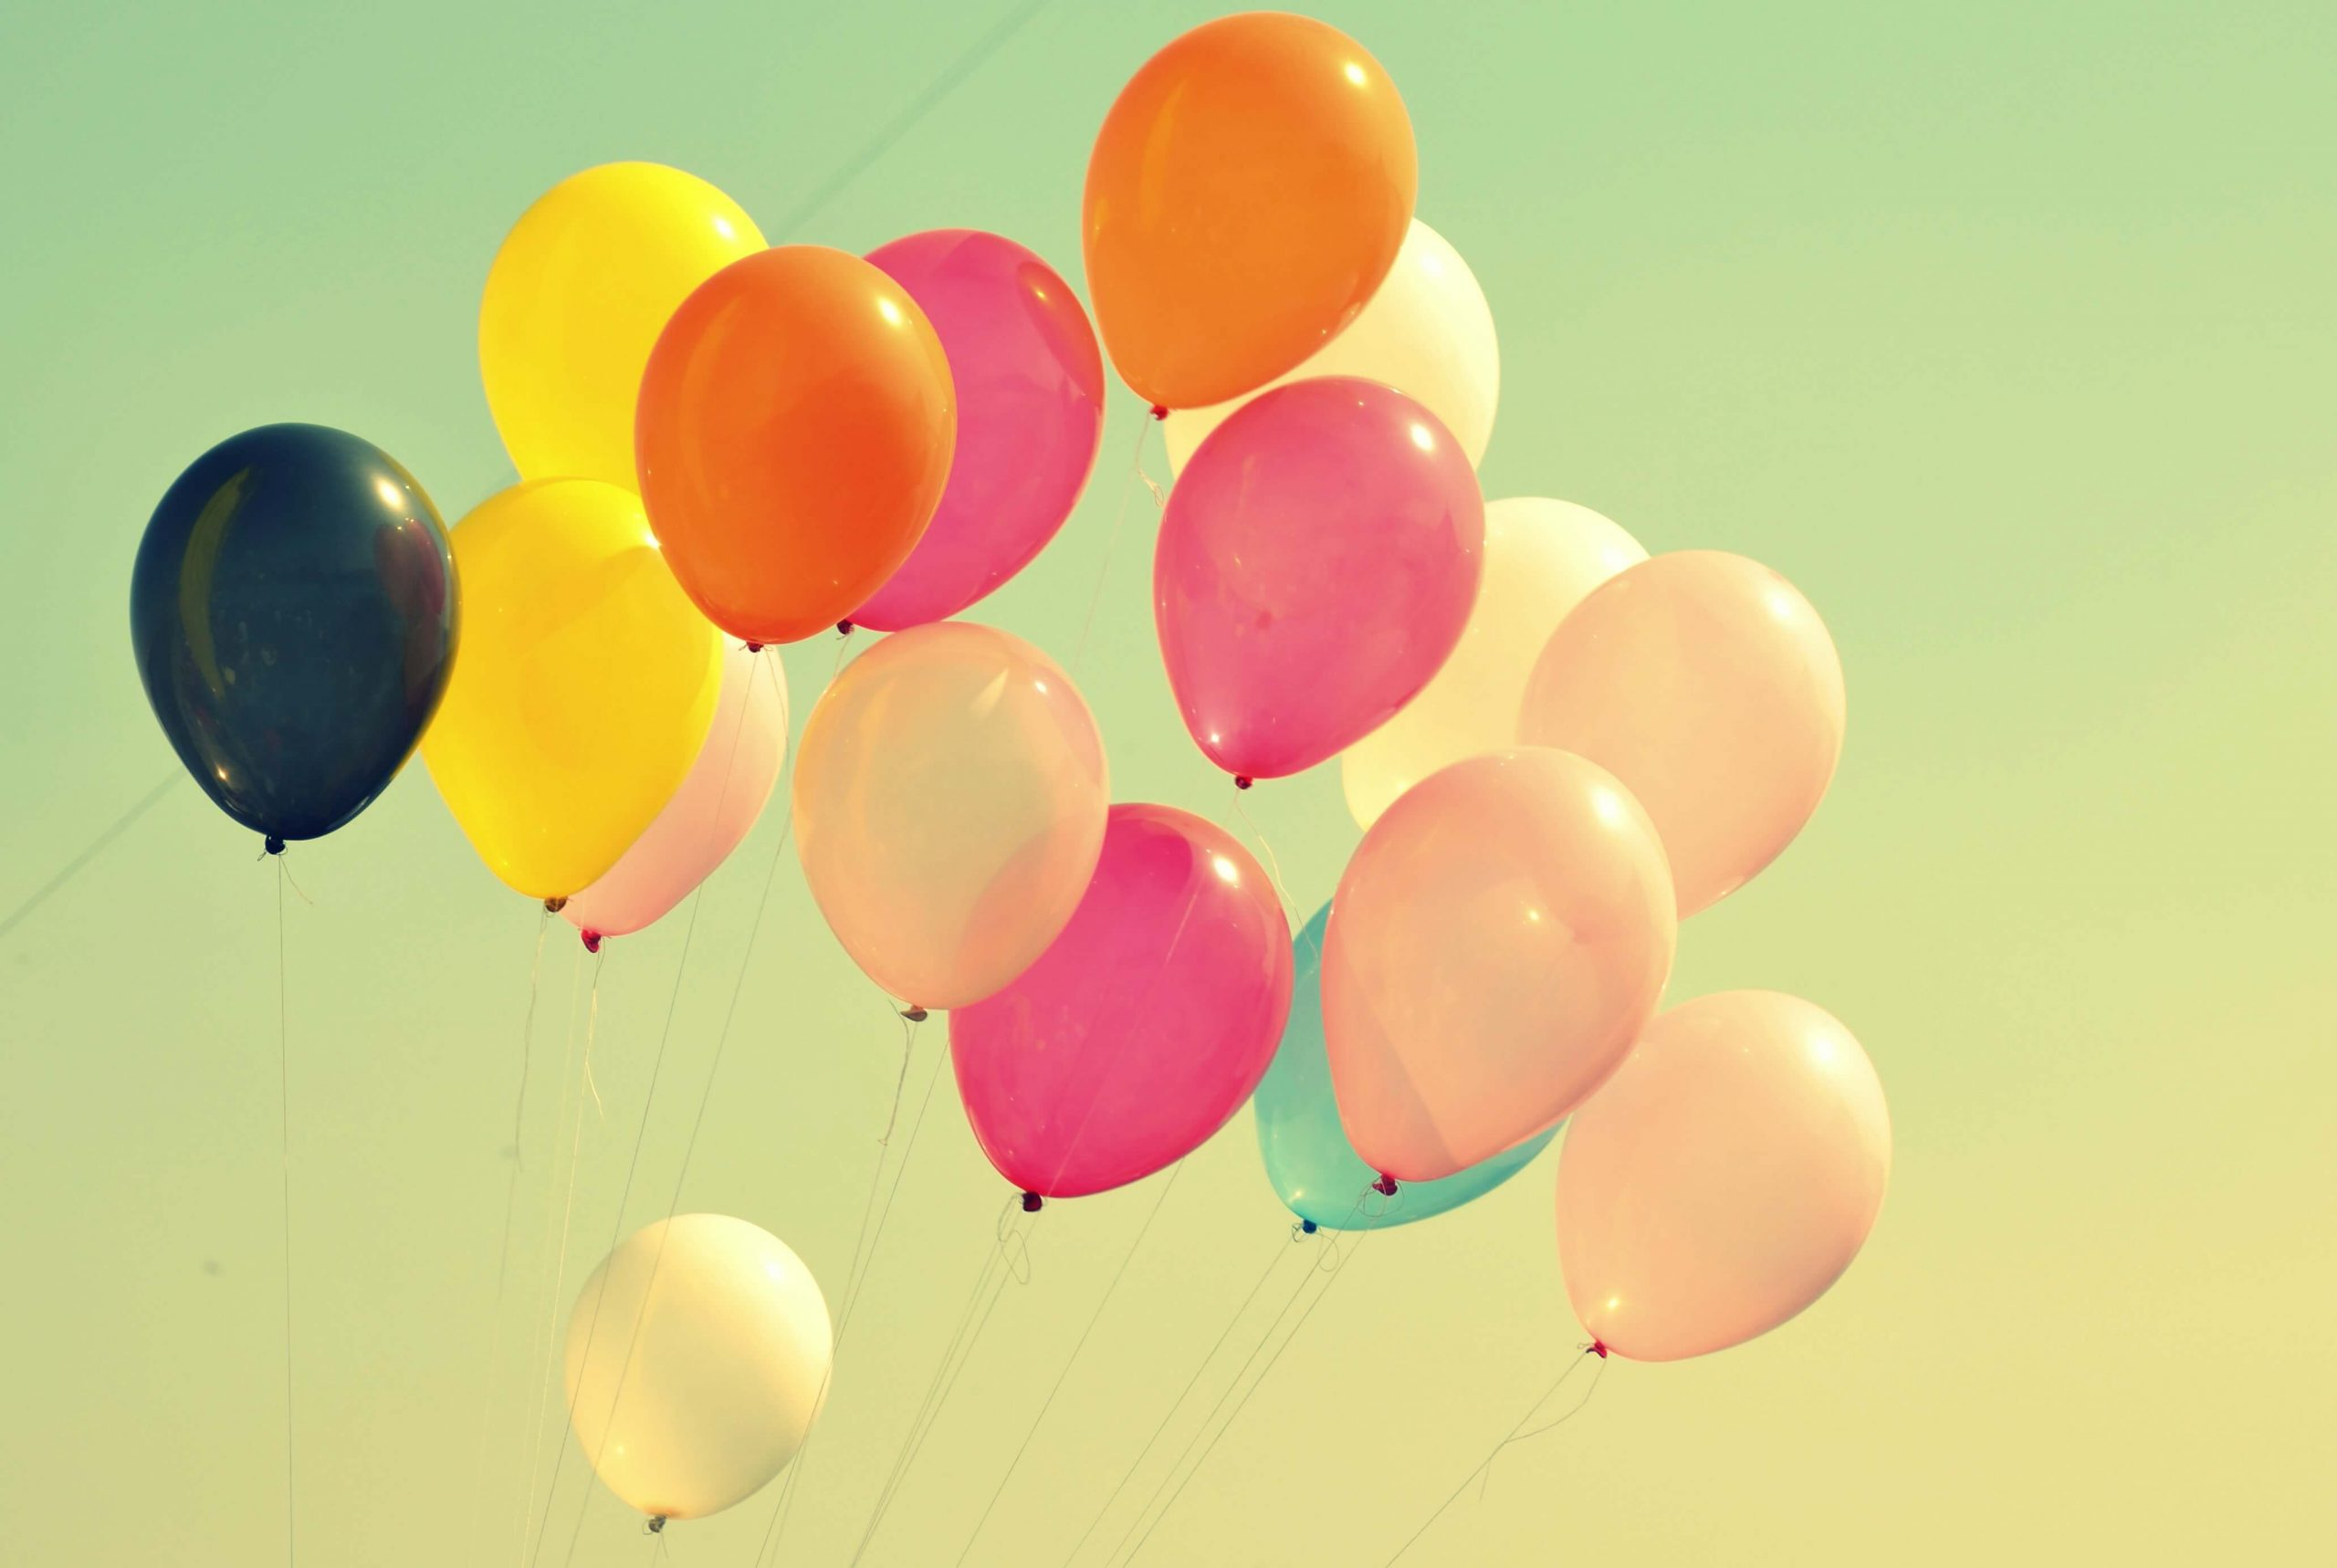 supports content #1 which discusses about balloons and using 100% biodegradable ones